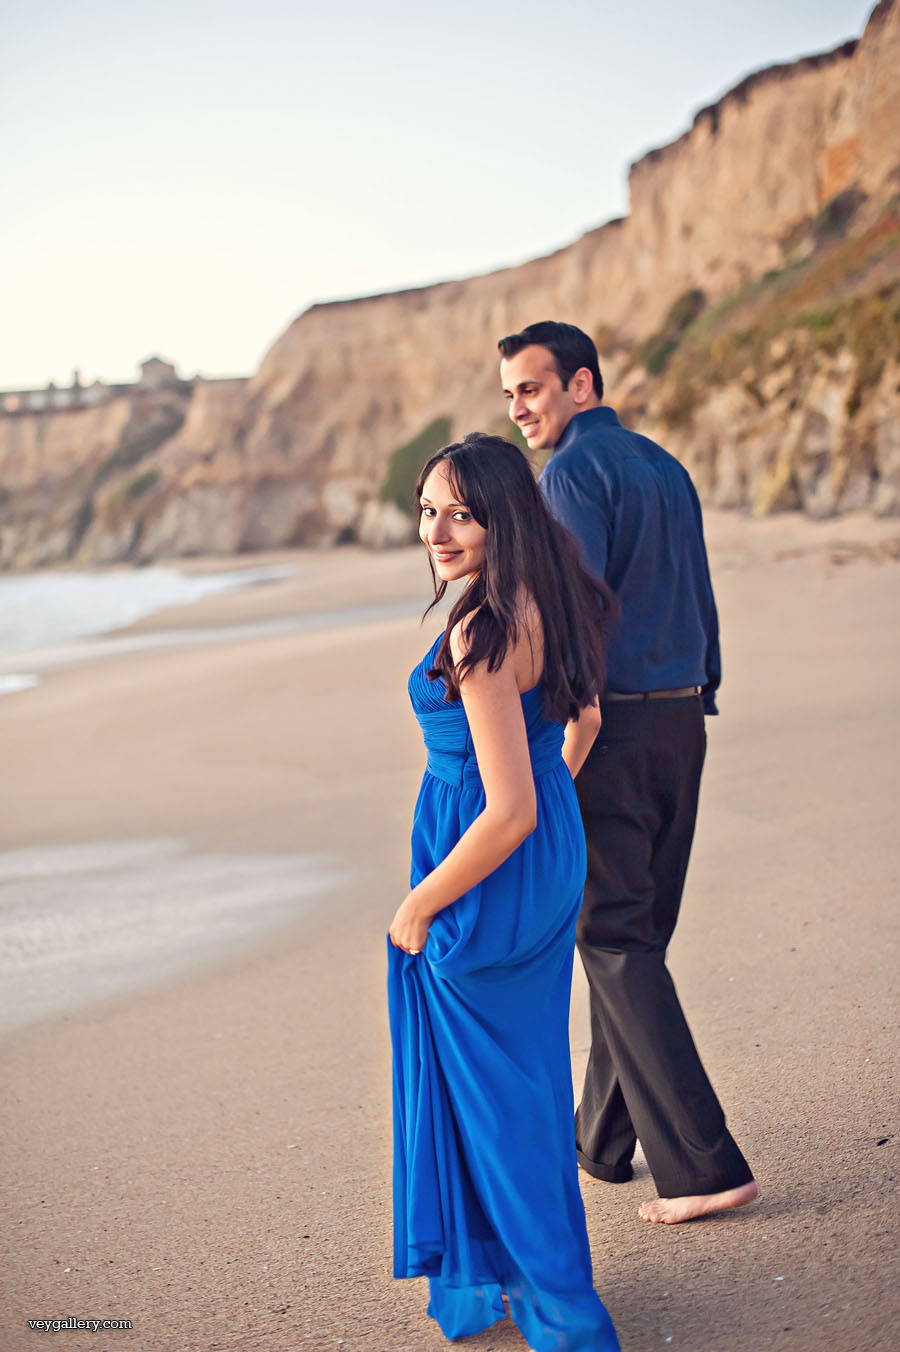 The-Ritz-Carlton-Half-Moon-Bay-Engagement-Photography-0015.jpg